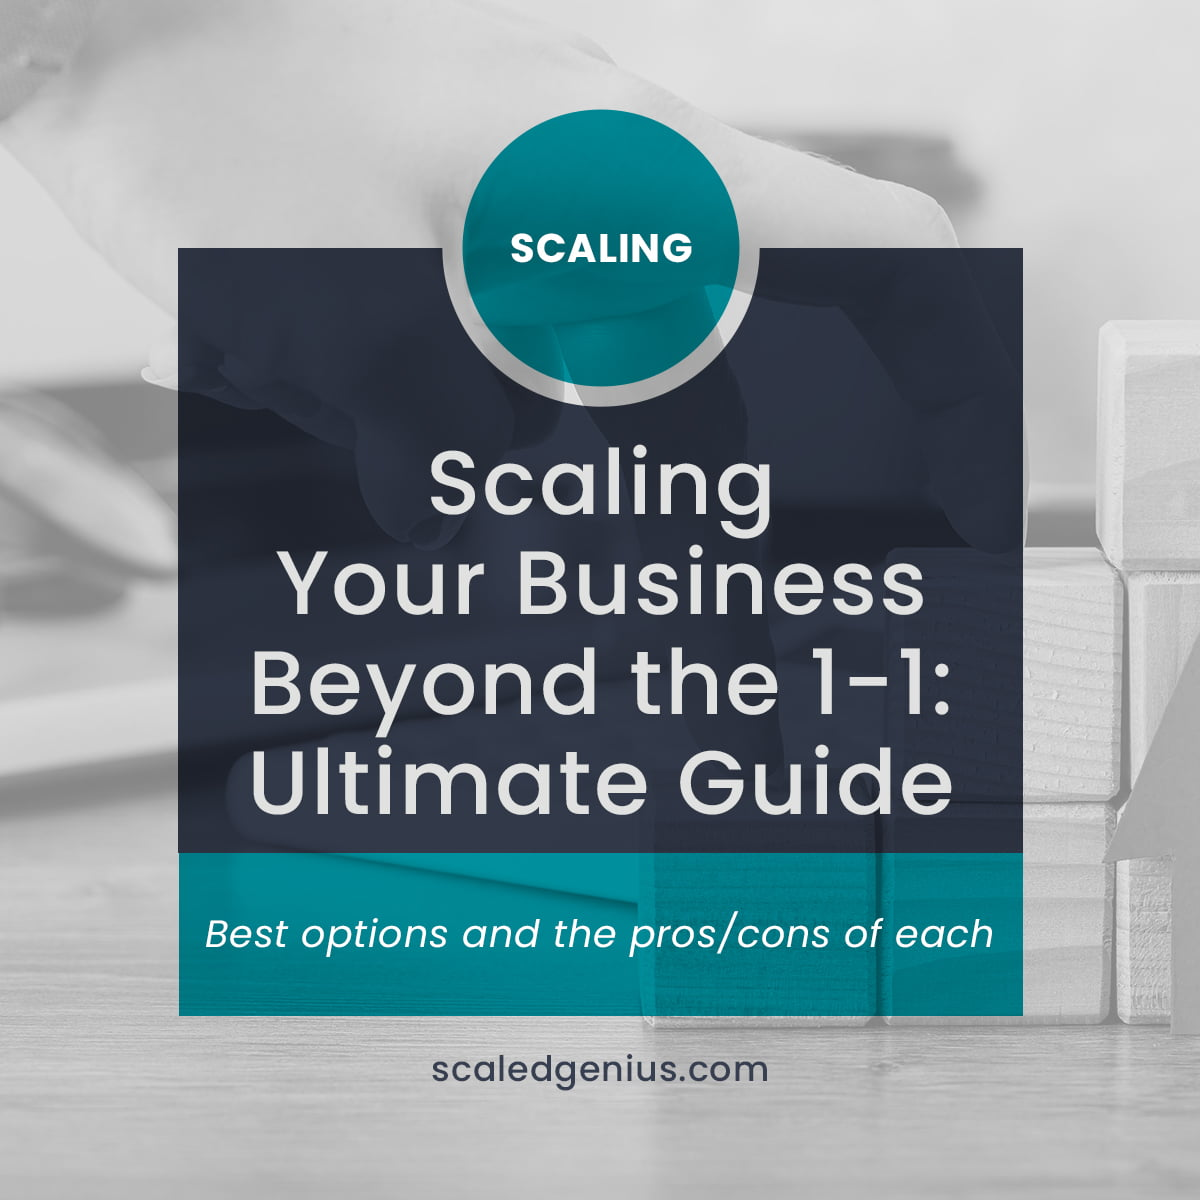 Scaling Your Business Beyond the 1-1: Ultimate Guide